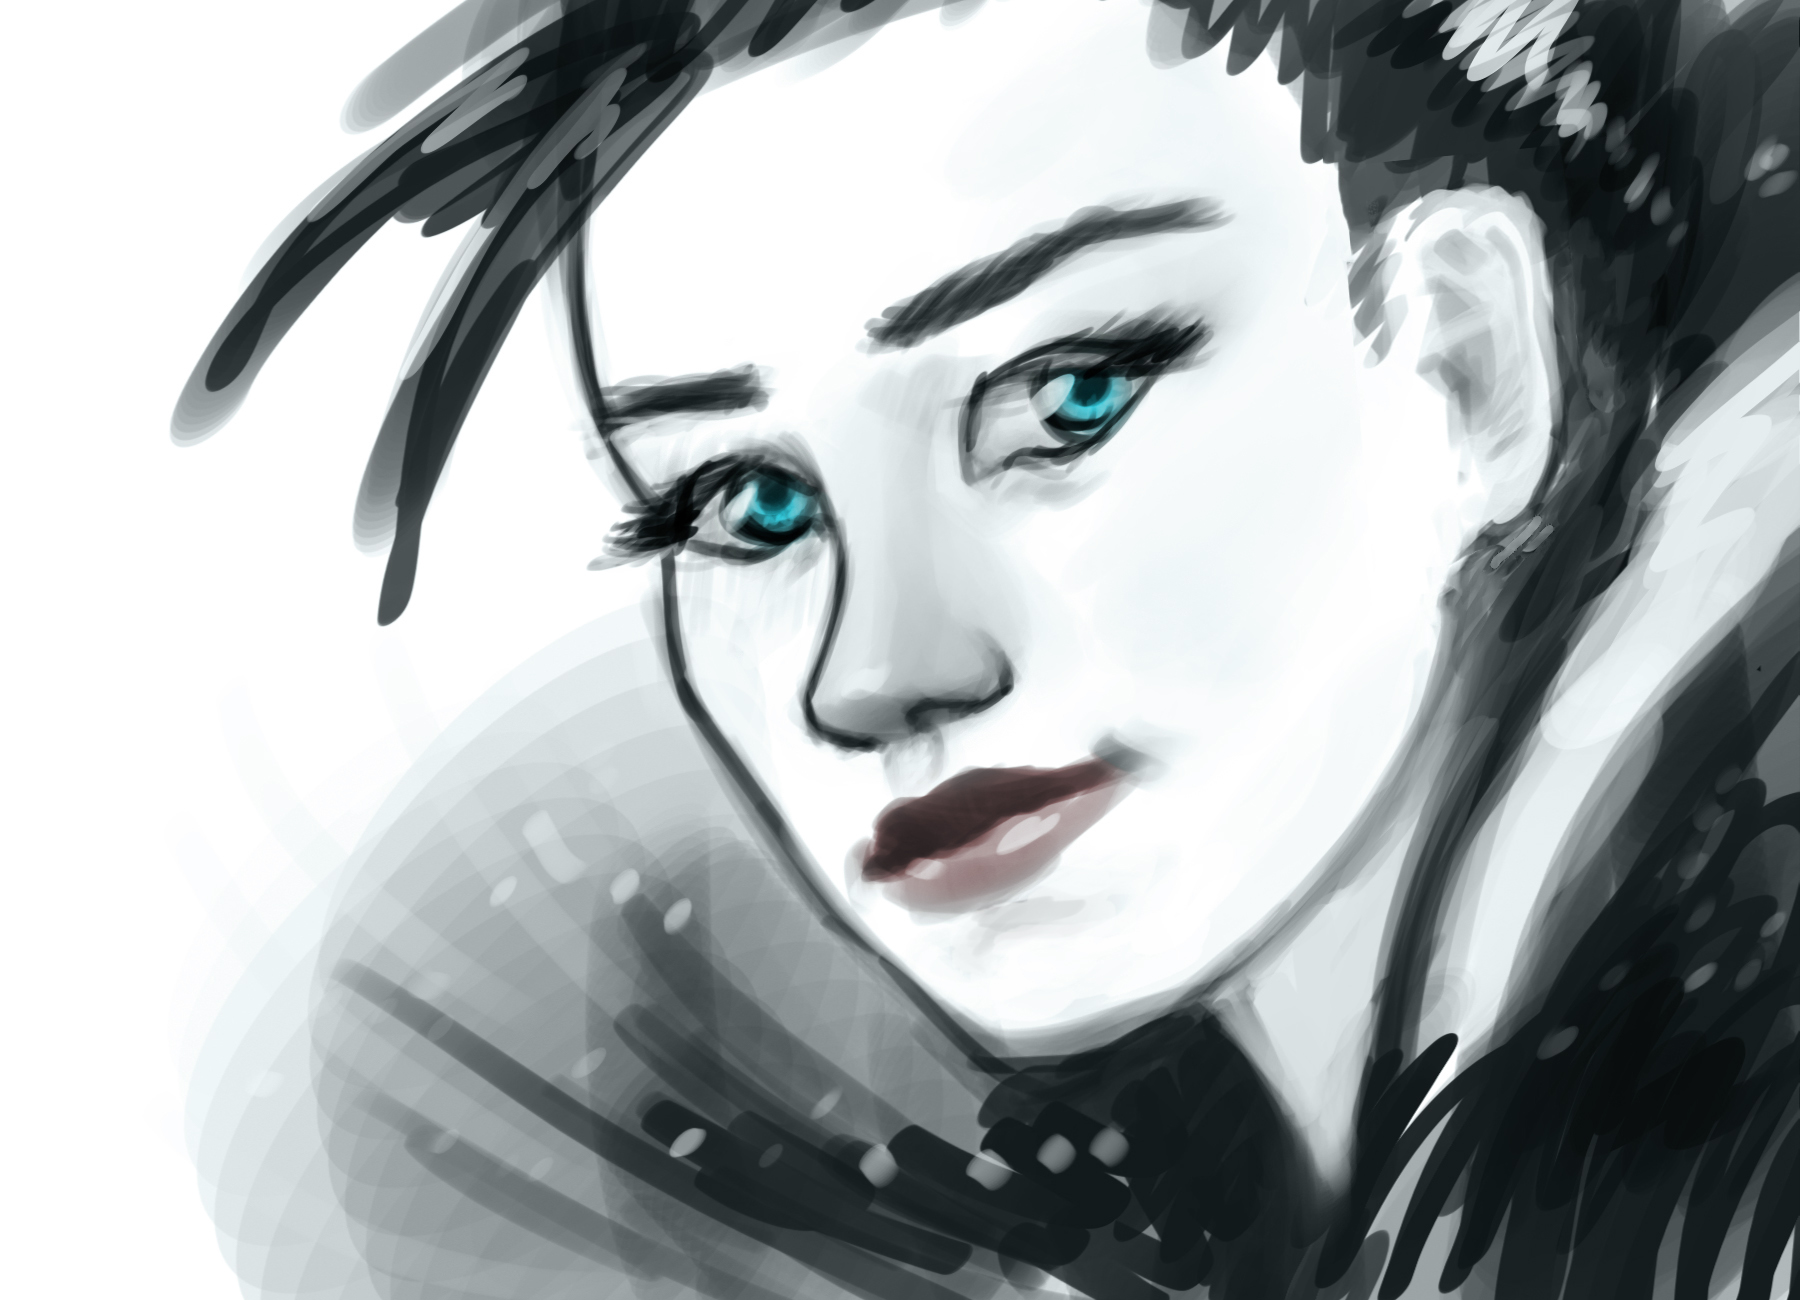 Speed Paint-Chick face.